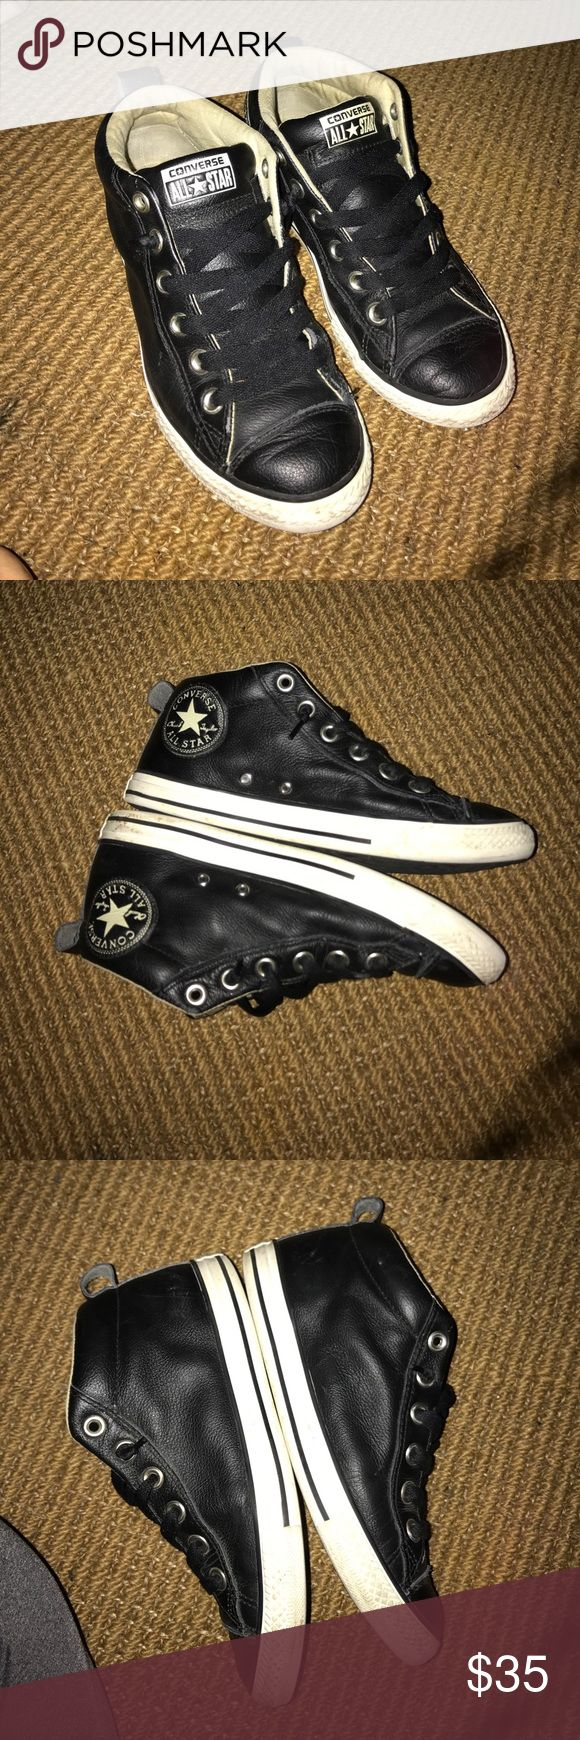 Converse Leather black ankle size 5 Converse black leather ankle tennis shoes. Beautiful I've had these for a while they are in good condition. Converse Shoes Ankle Boots & Booties